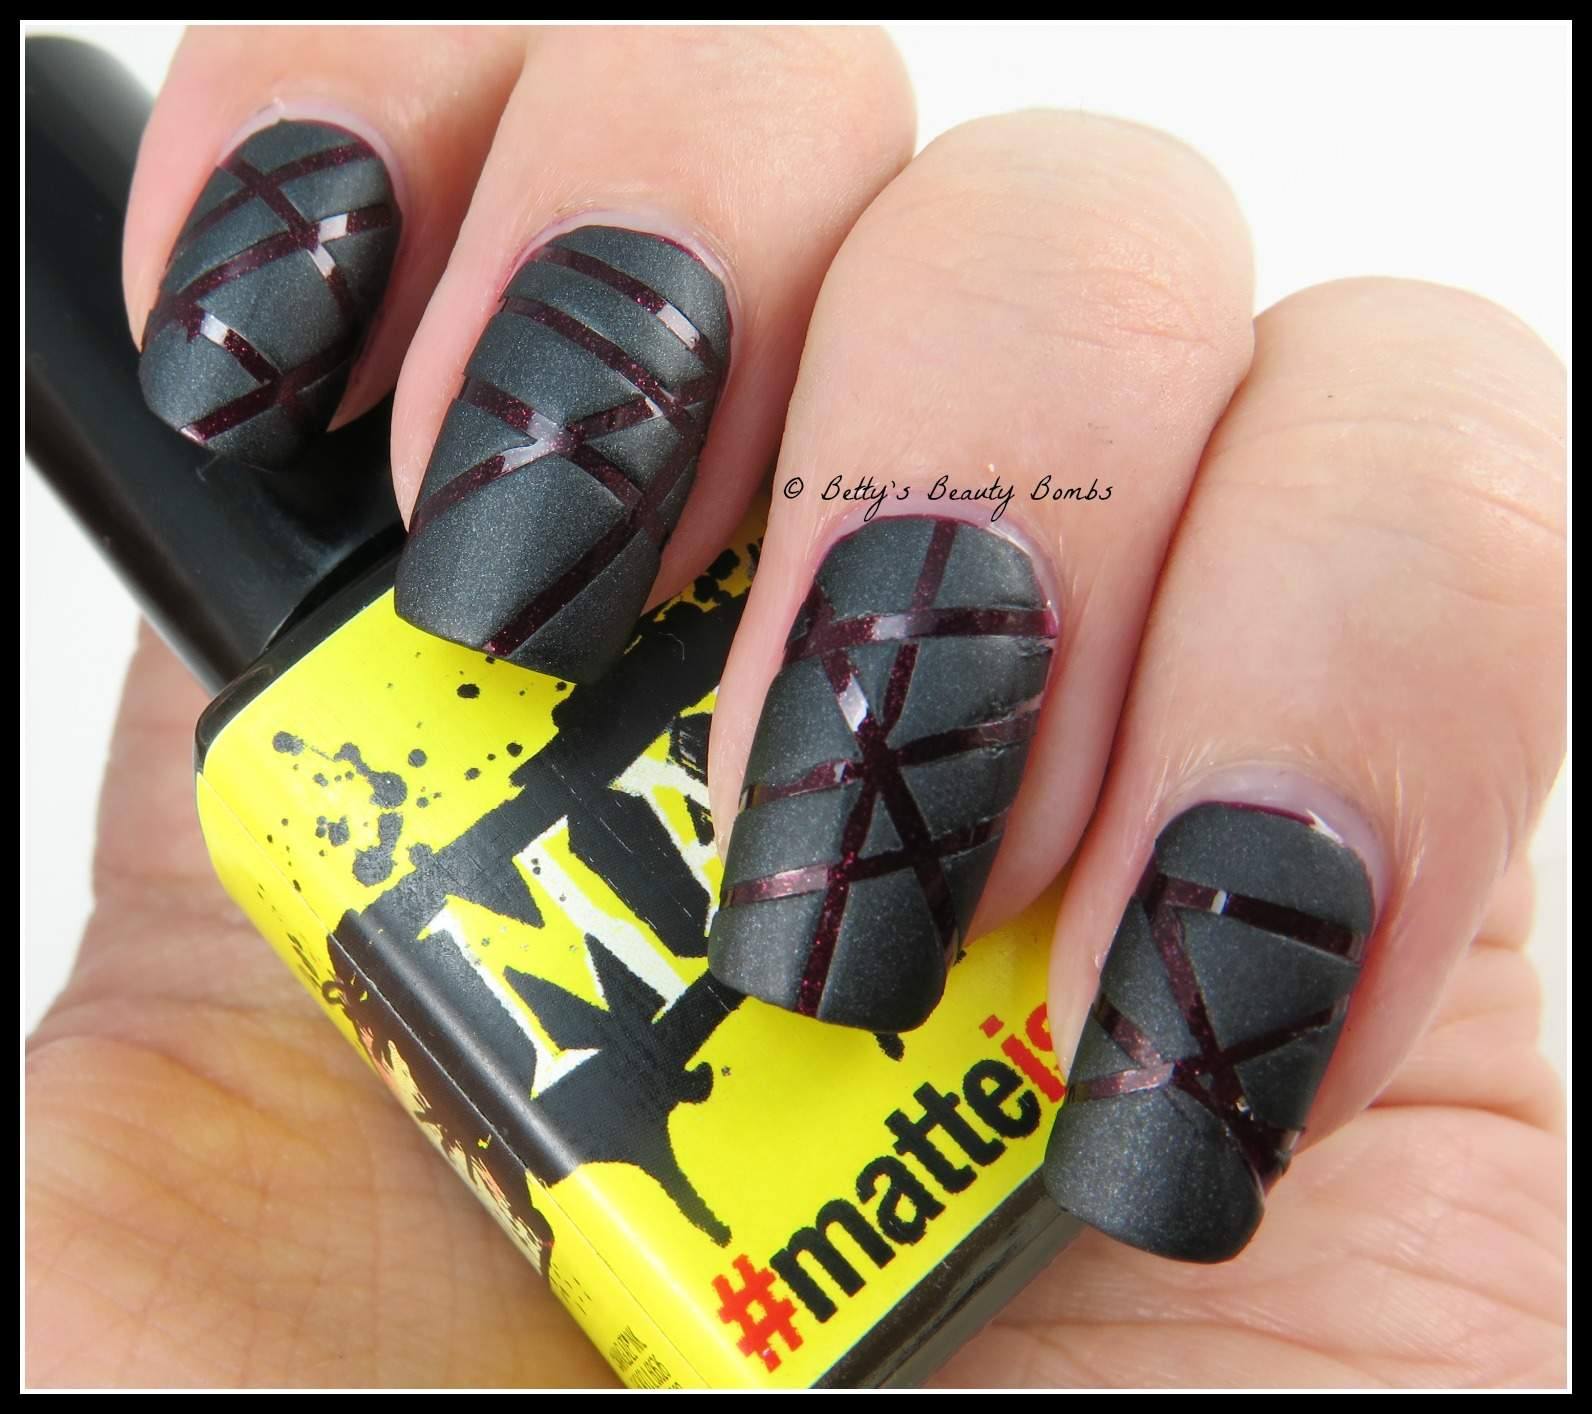 ManGlaze Matte is Murder and Ciate Silhouette - Lazy Betty